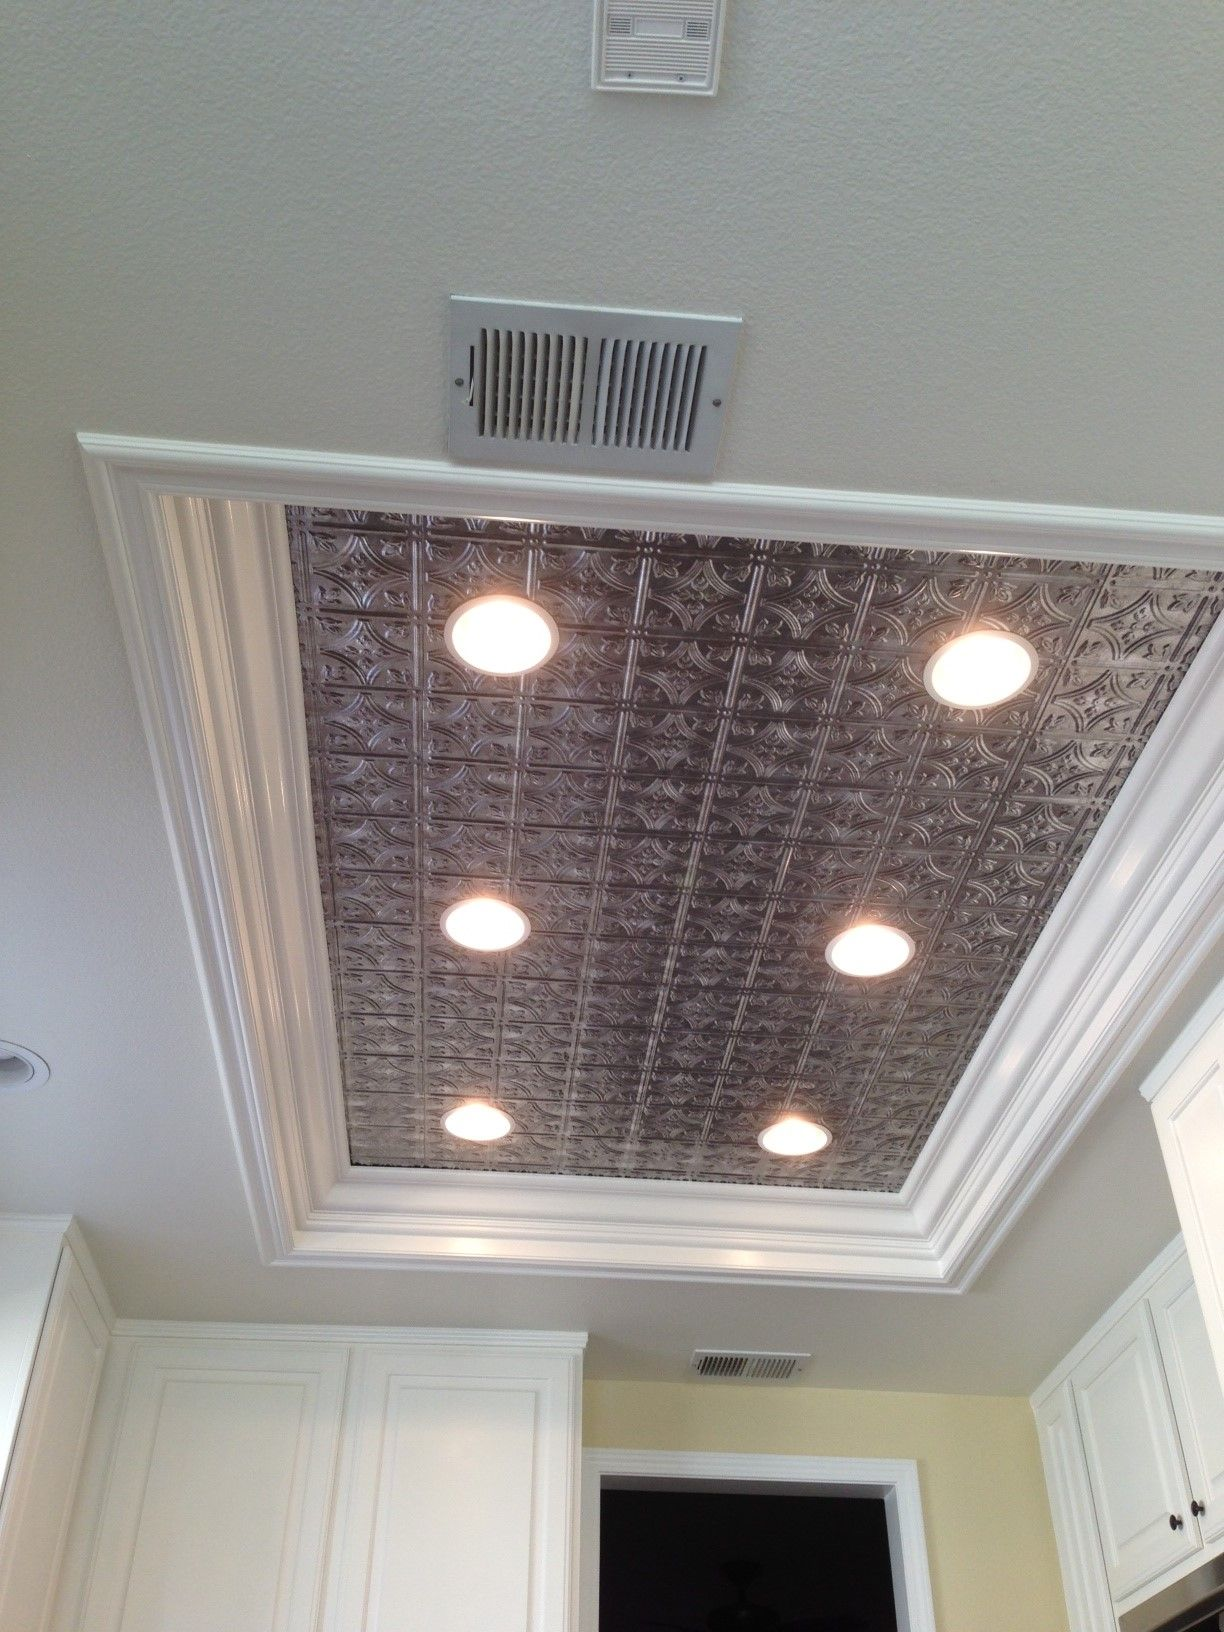 Ceiling Lights Kitchen Remodel Flourescent Light Box In Kitchen We Also Replaced The